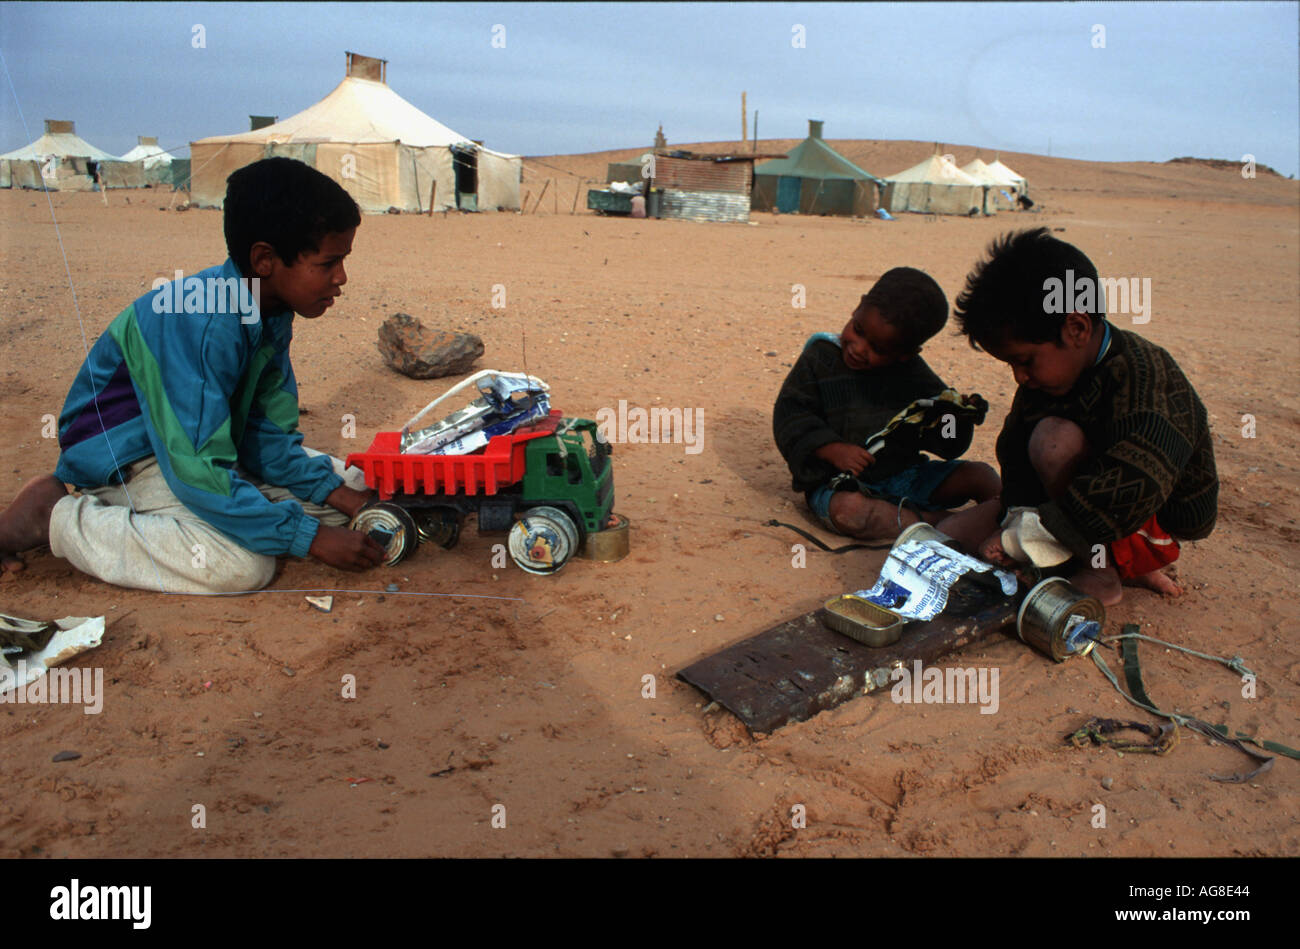 WESTERN SAHARA CHILDREN PLAYING WITH TRUCKS MADE OF RECYCLED METAL IN POLISARIO REFUGEE CAMPS Photo Julio Etchart - Stock Image